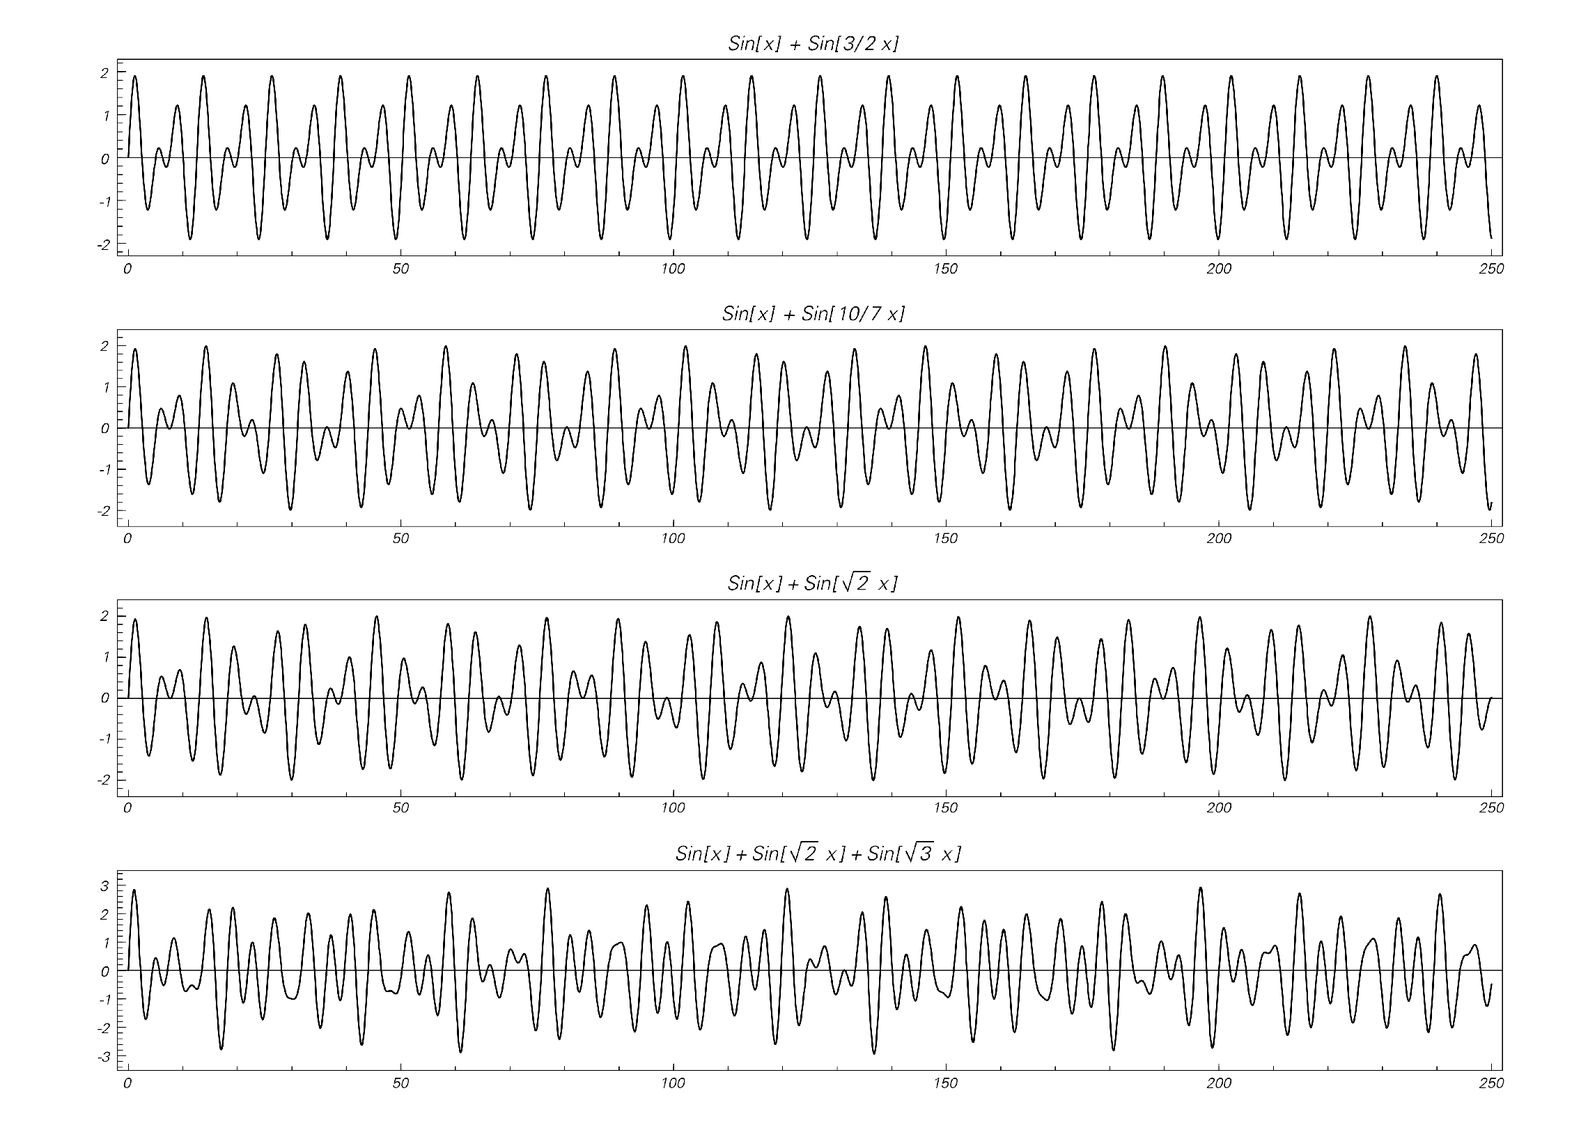 Curves obtained by adding various sine functions